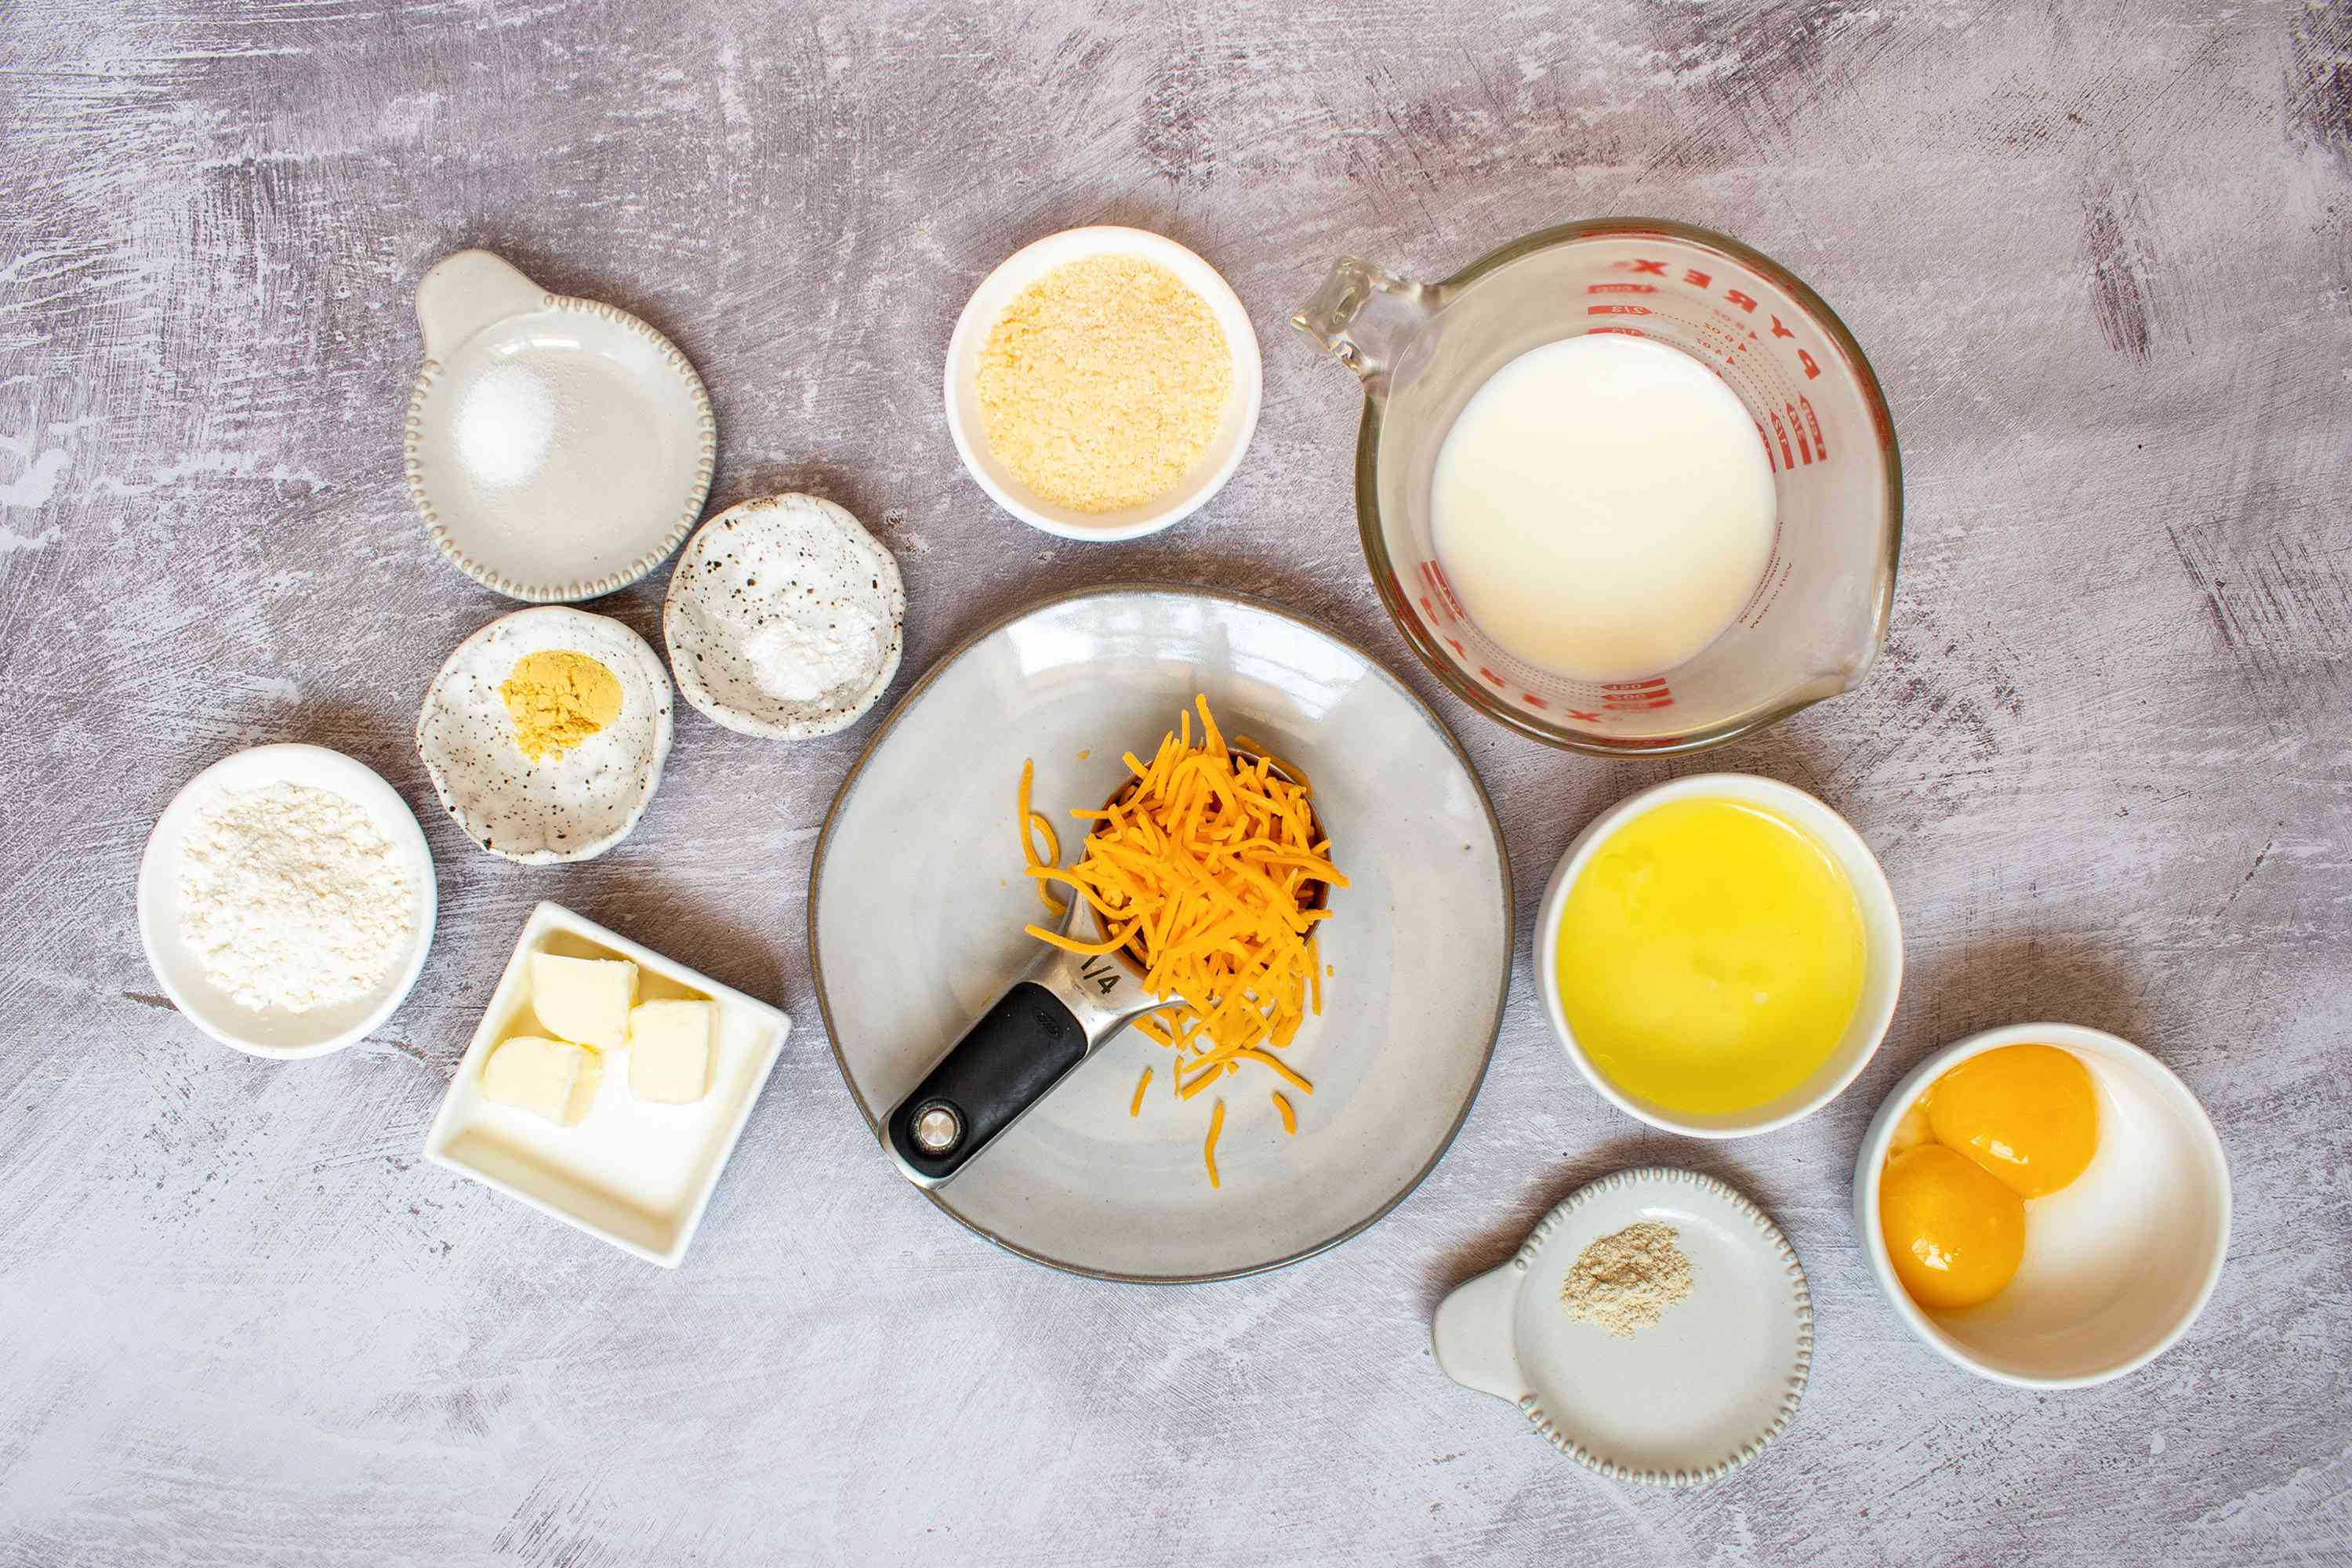 Ingredients for cheese souffle